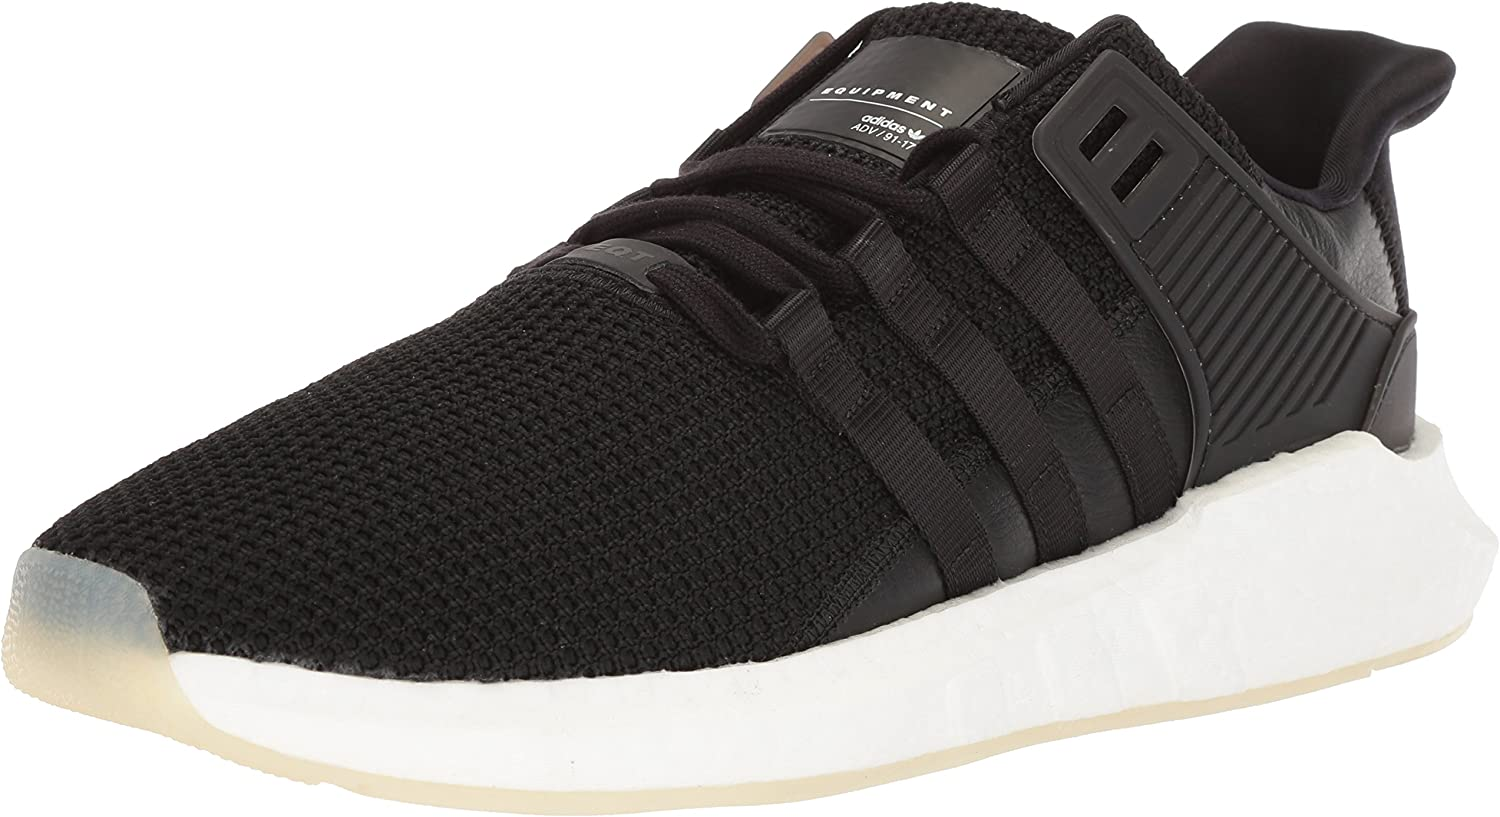 adidas Originals Men s EQT Support 93 17 Running Shoe, core Black core Black White, 10.5 M US